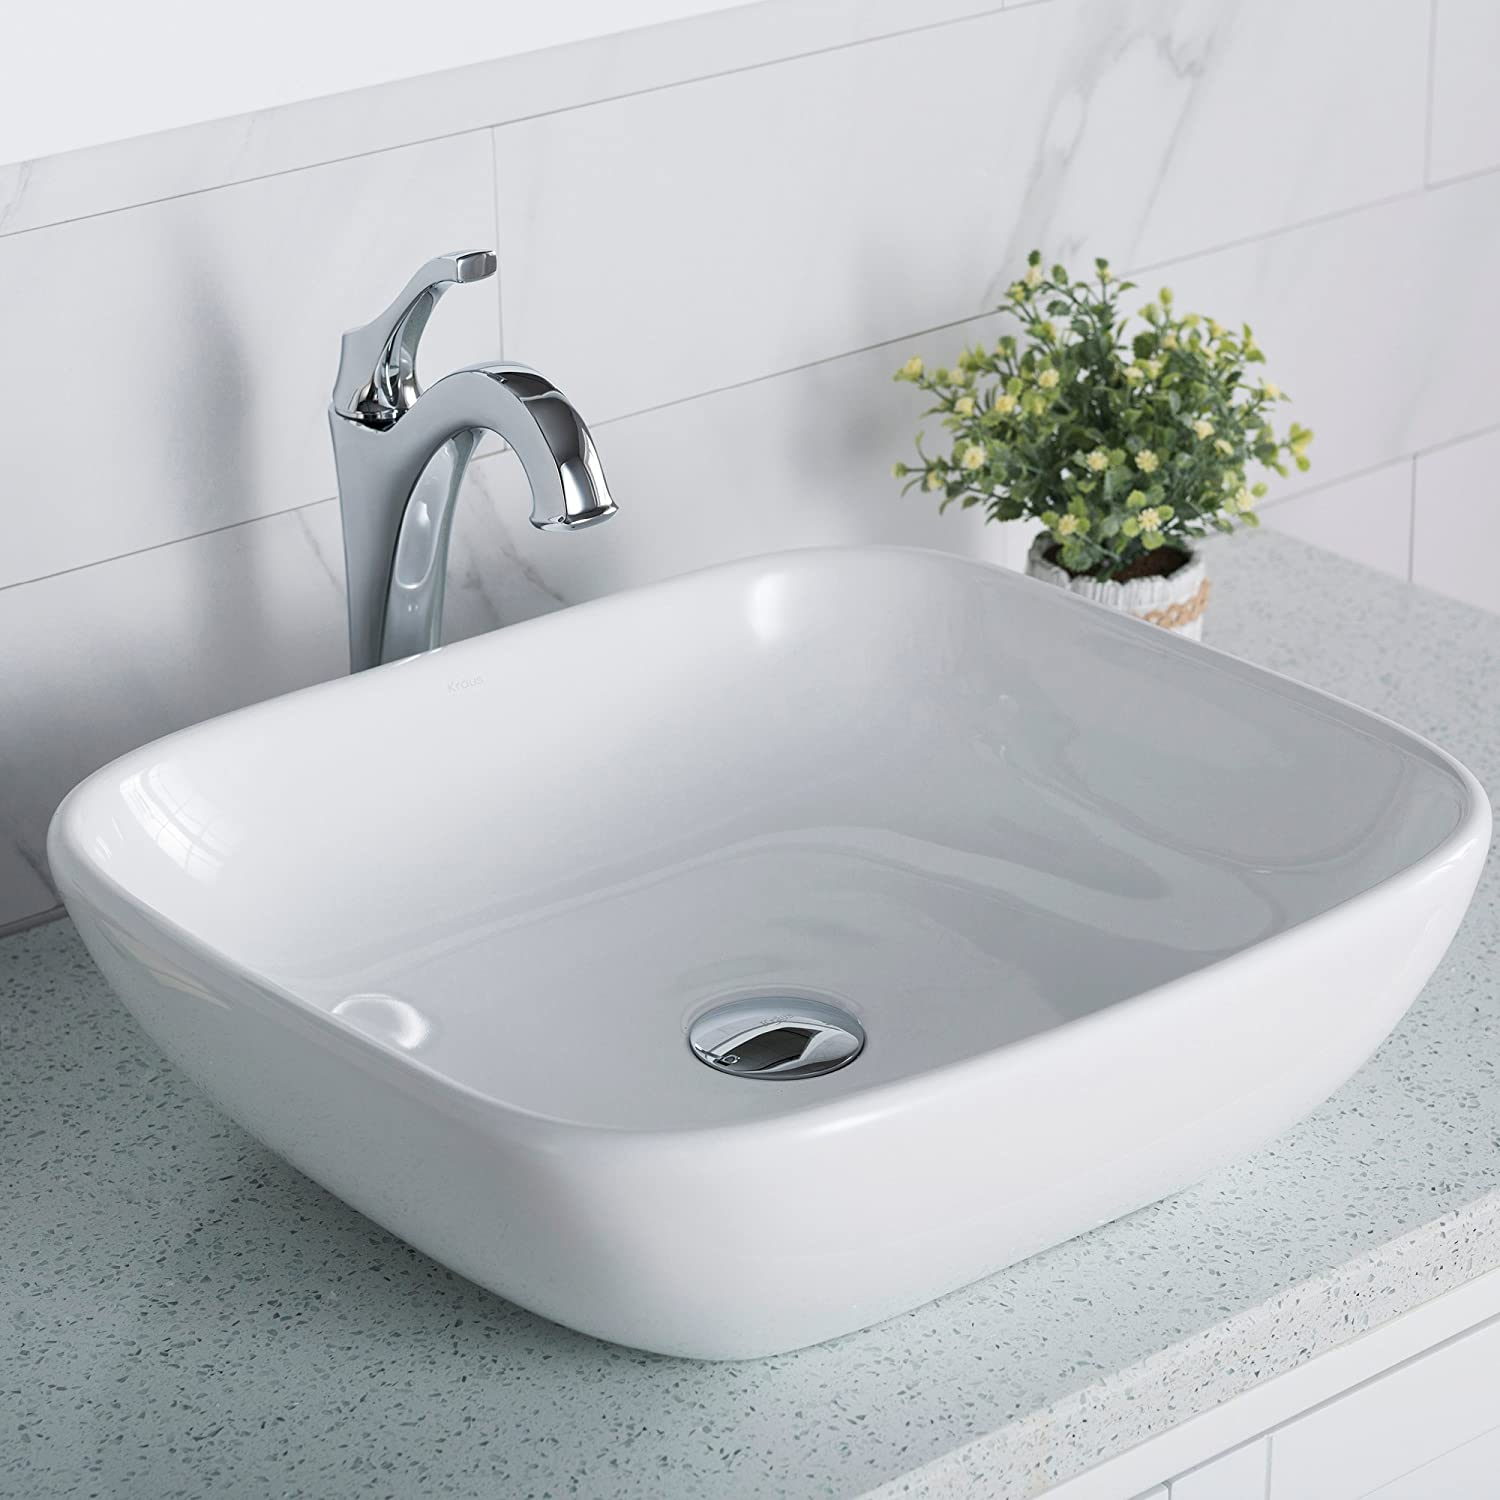 Kraus KCV-127 Elavo Bathroom Vessel Ceramic Sink, 18 Inch, White